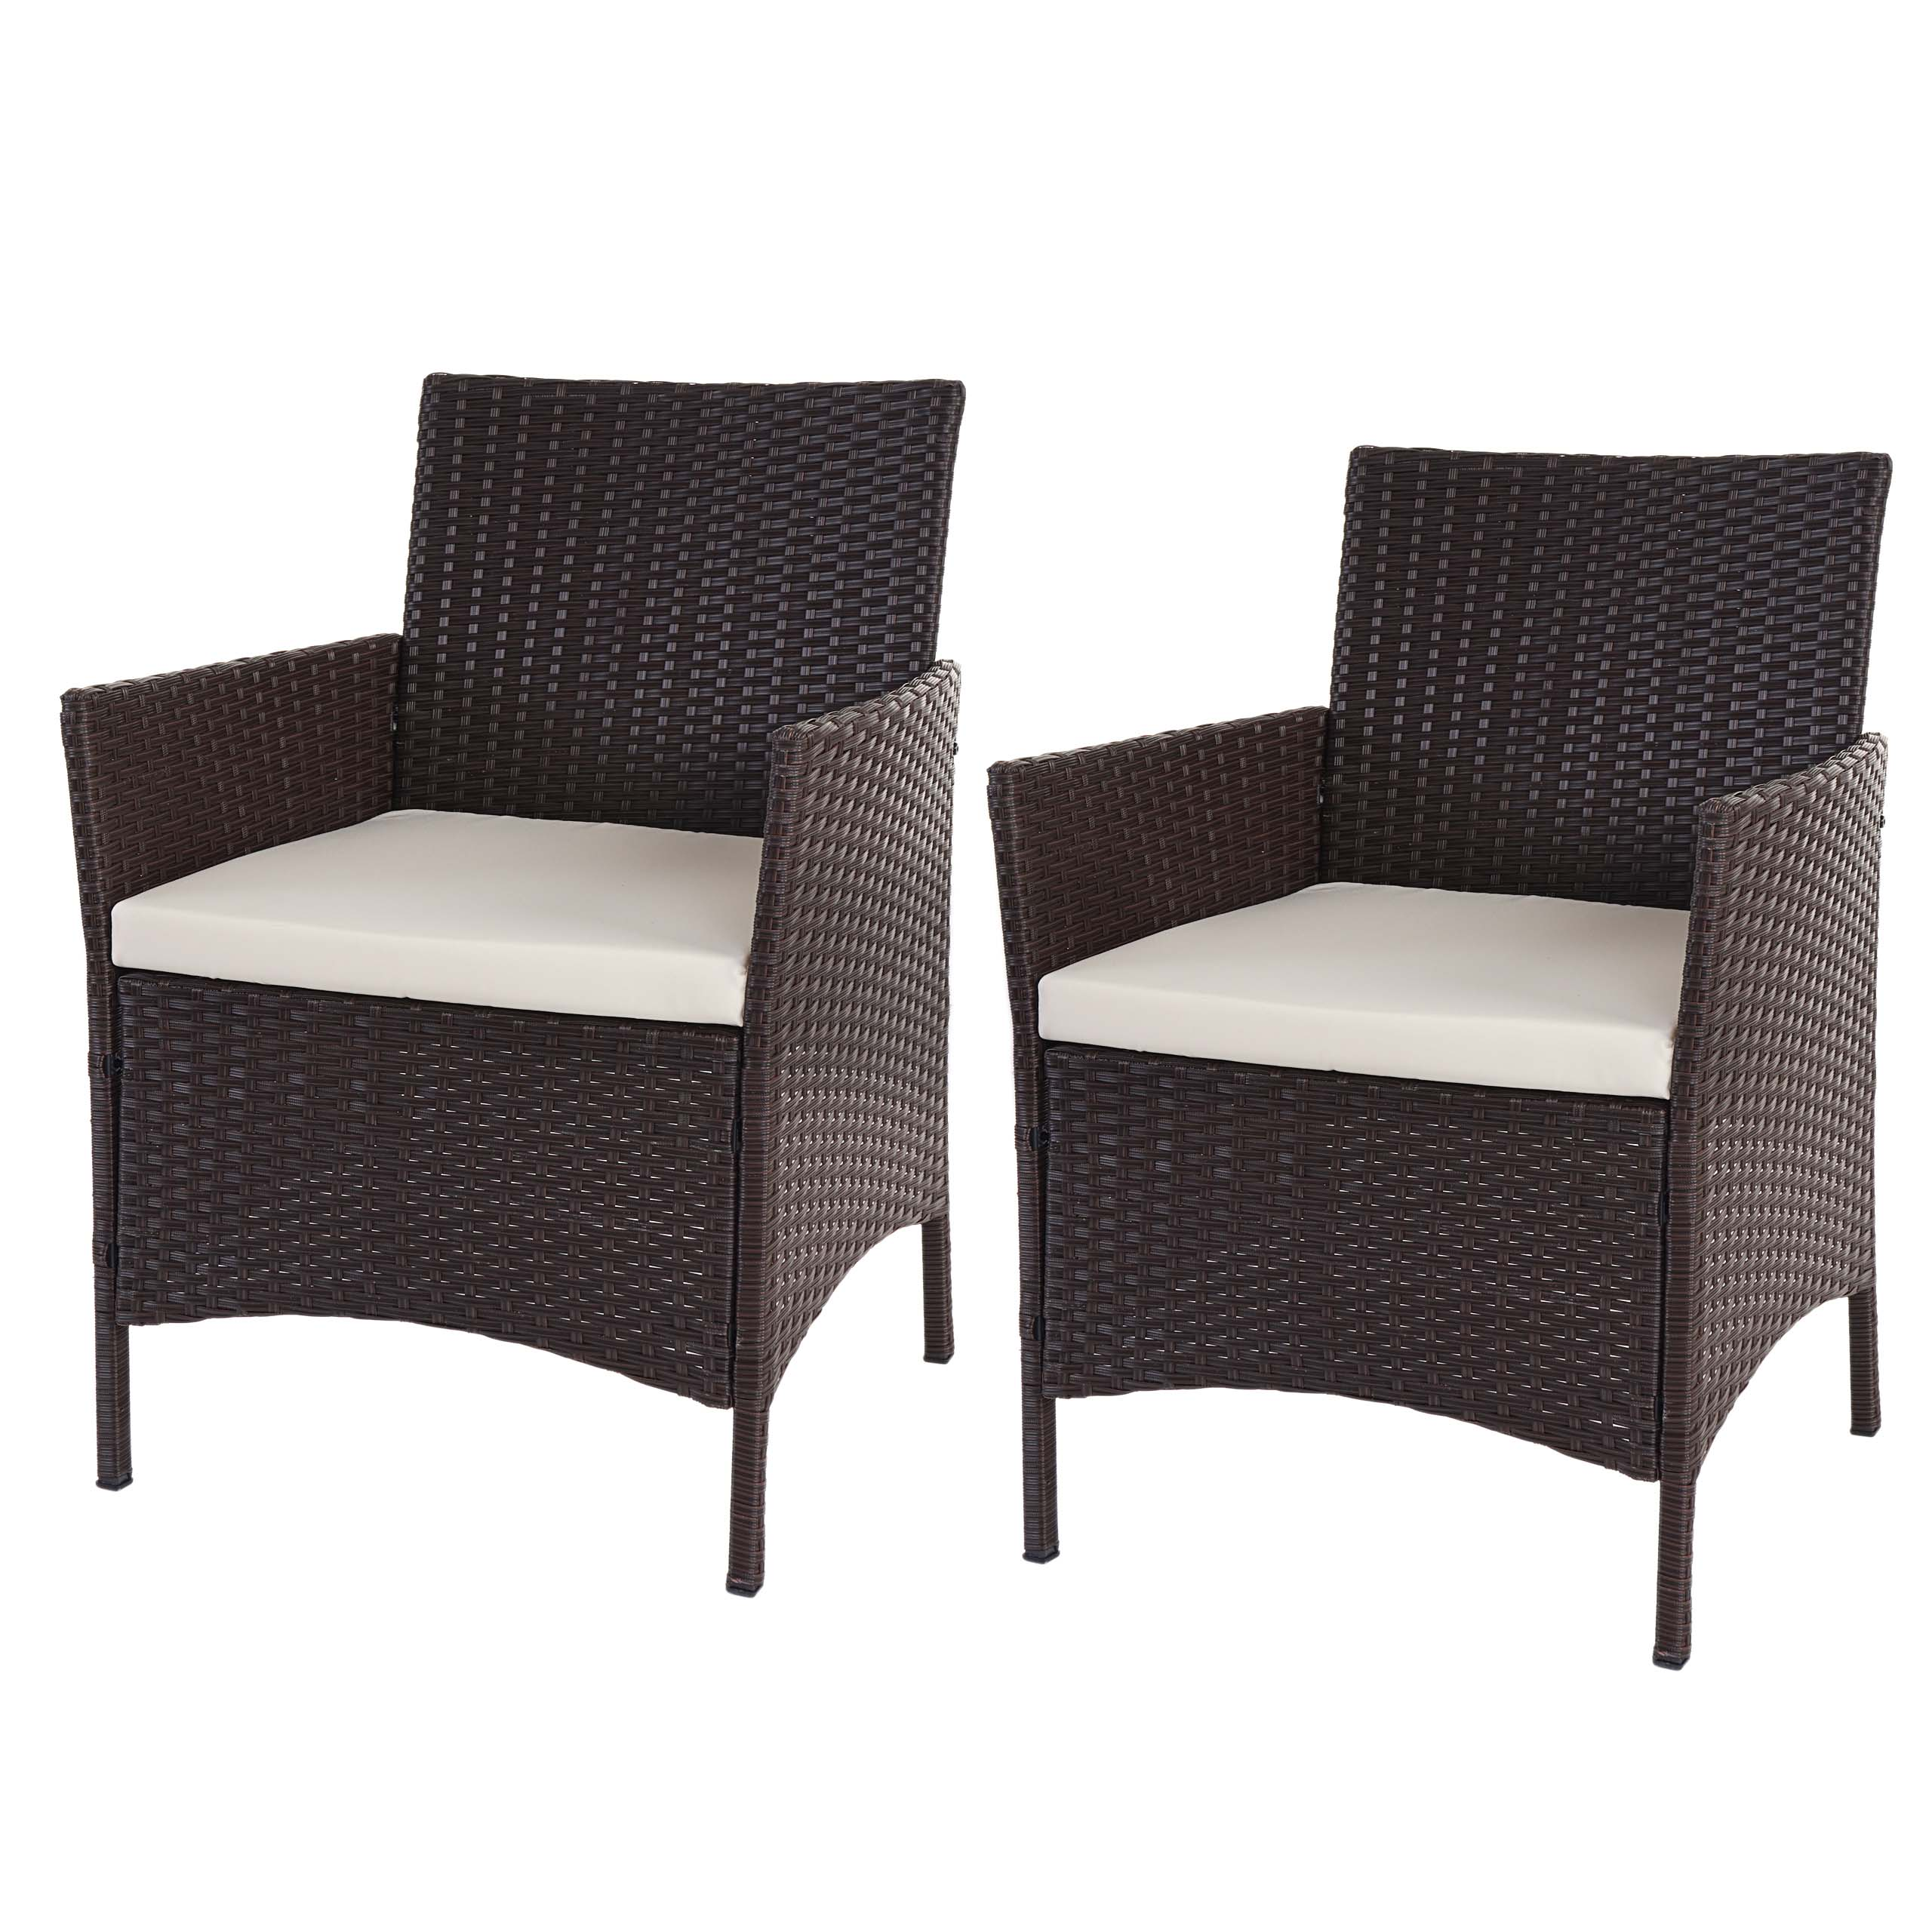 2x poly rattan gartensessel halden korbsessel braun meliert kissen creme. Black Bedroom Furniture Sets. Home Design Ideas